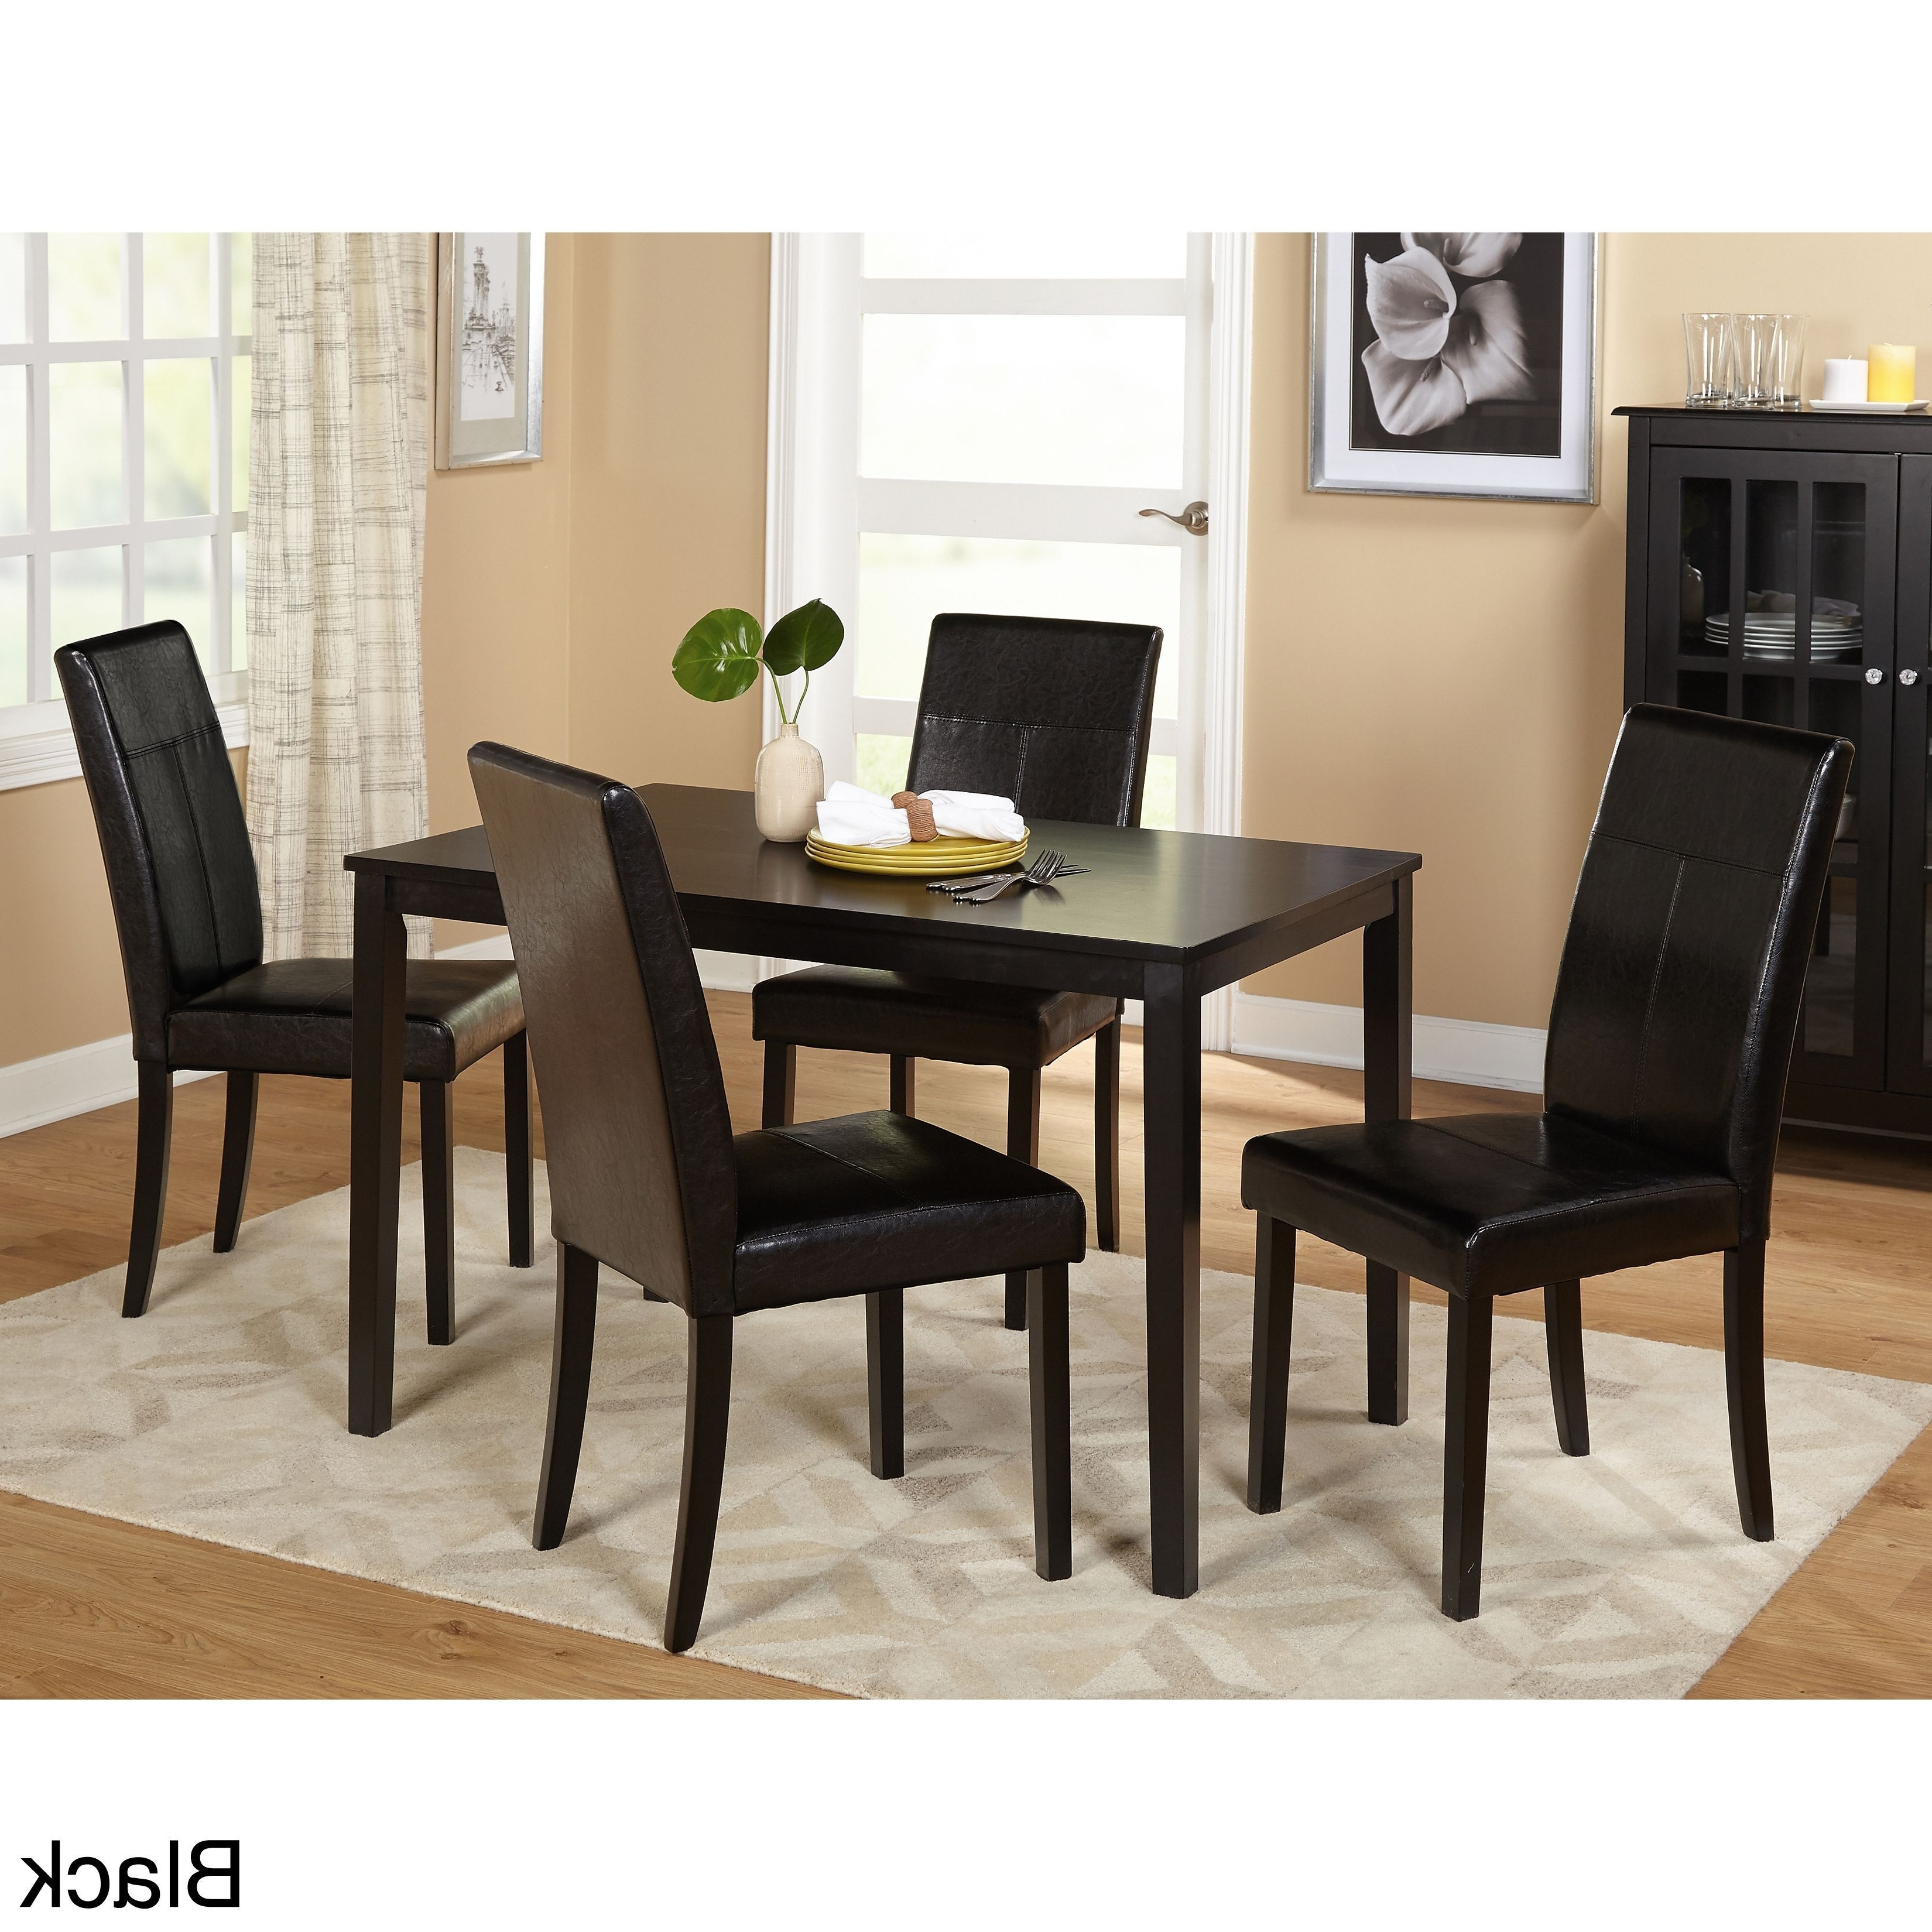 Toby 7 Piece Dining Setorren Ellis Reviews With Regard To Well Known Combs 5 Piece 48 Inch Extension Dining Sets With Mindy Side Chairs (View 21 of 25)